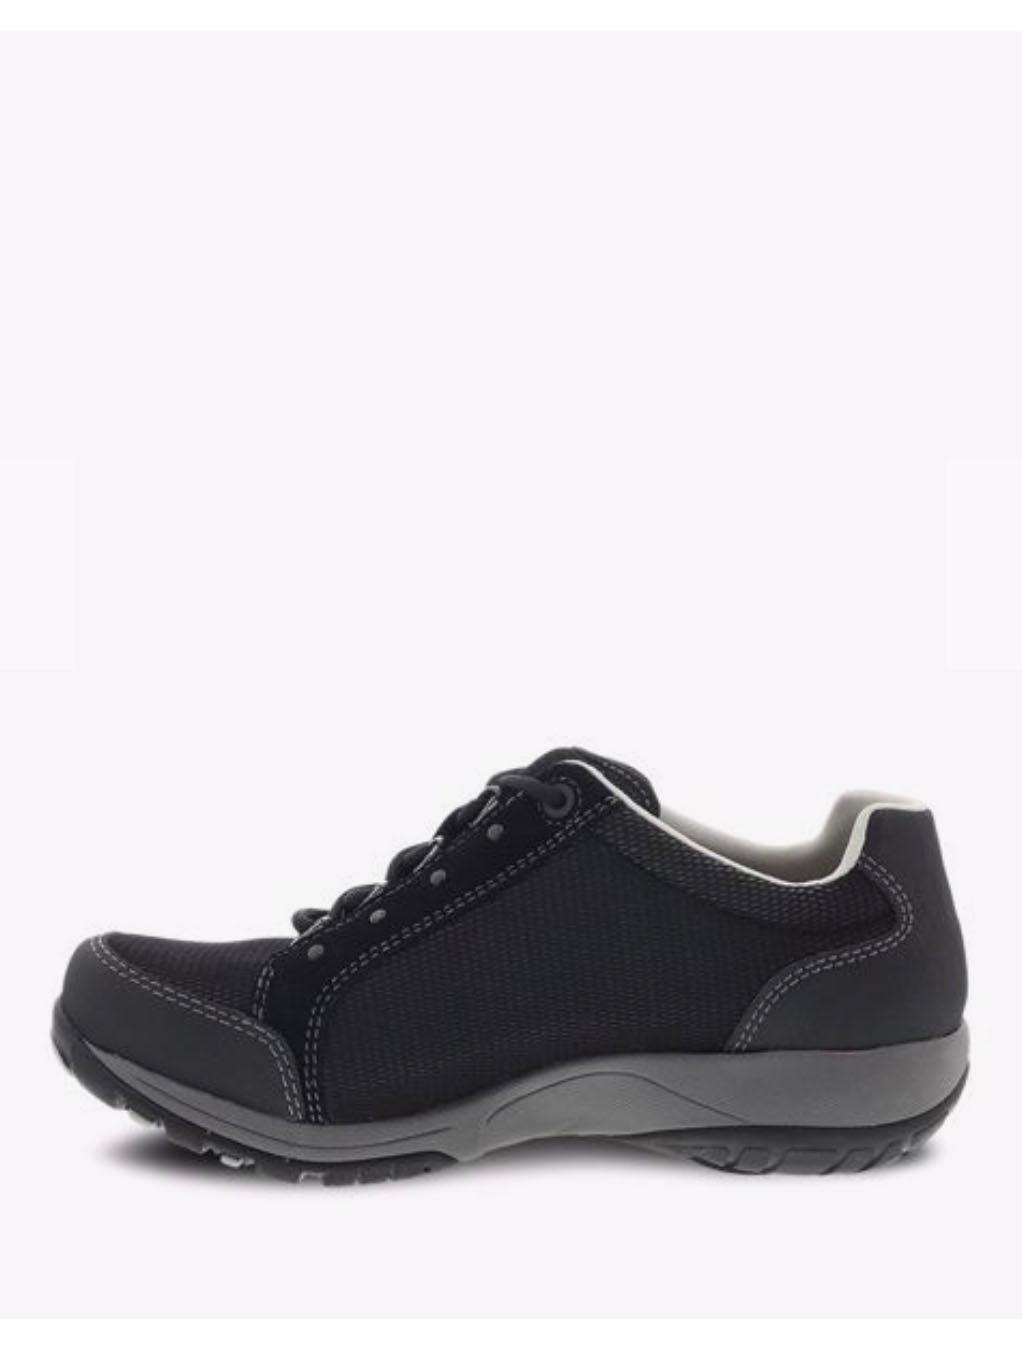 Dansko Peggy Sneaker in Black